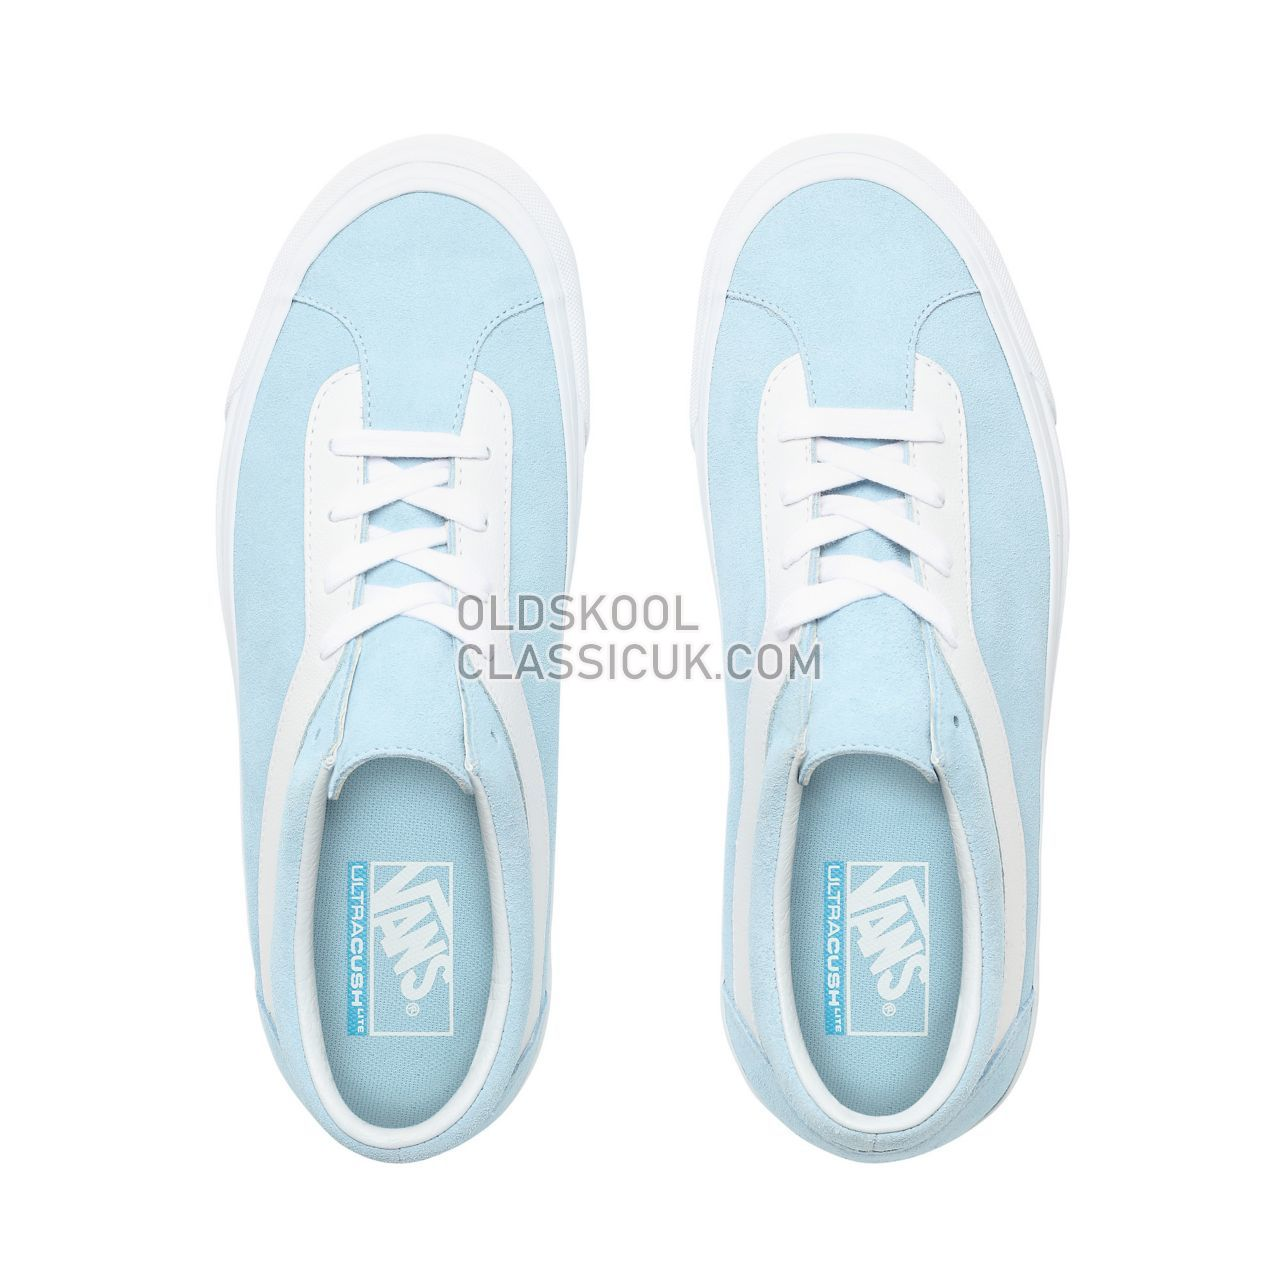 Vans Suede Bold NI Sneakers Mens (Suede) Cool Blue/True White VN0A3WLPVLJ Shoes